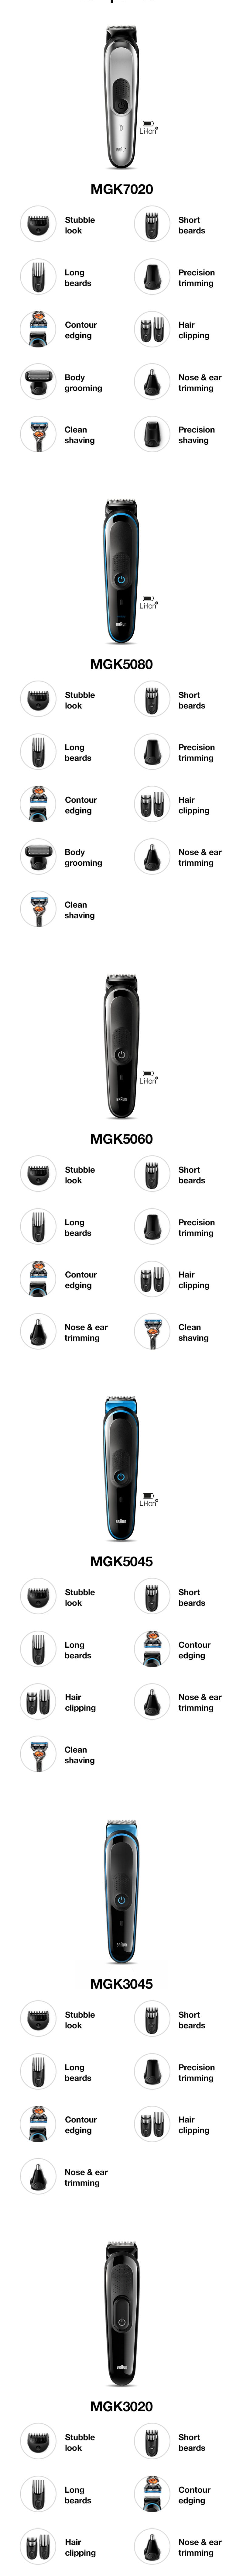 All-in-one trimmer comparison